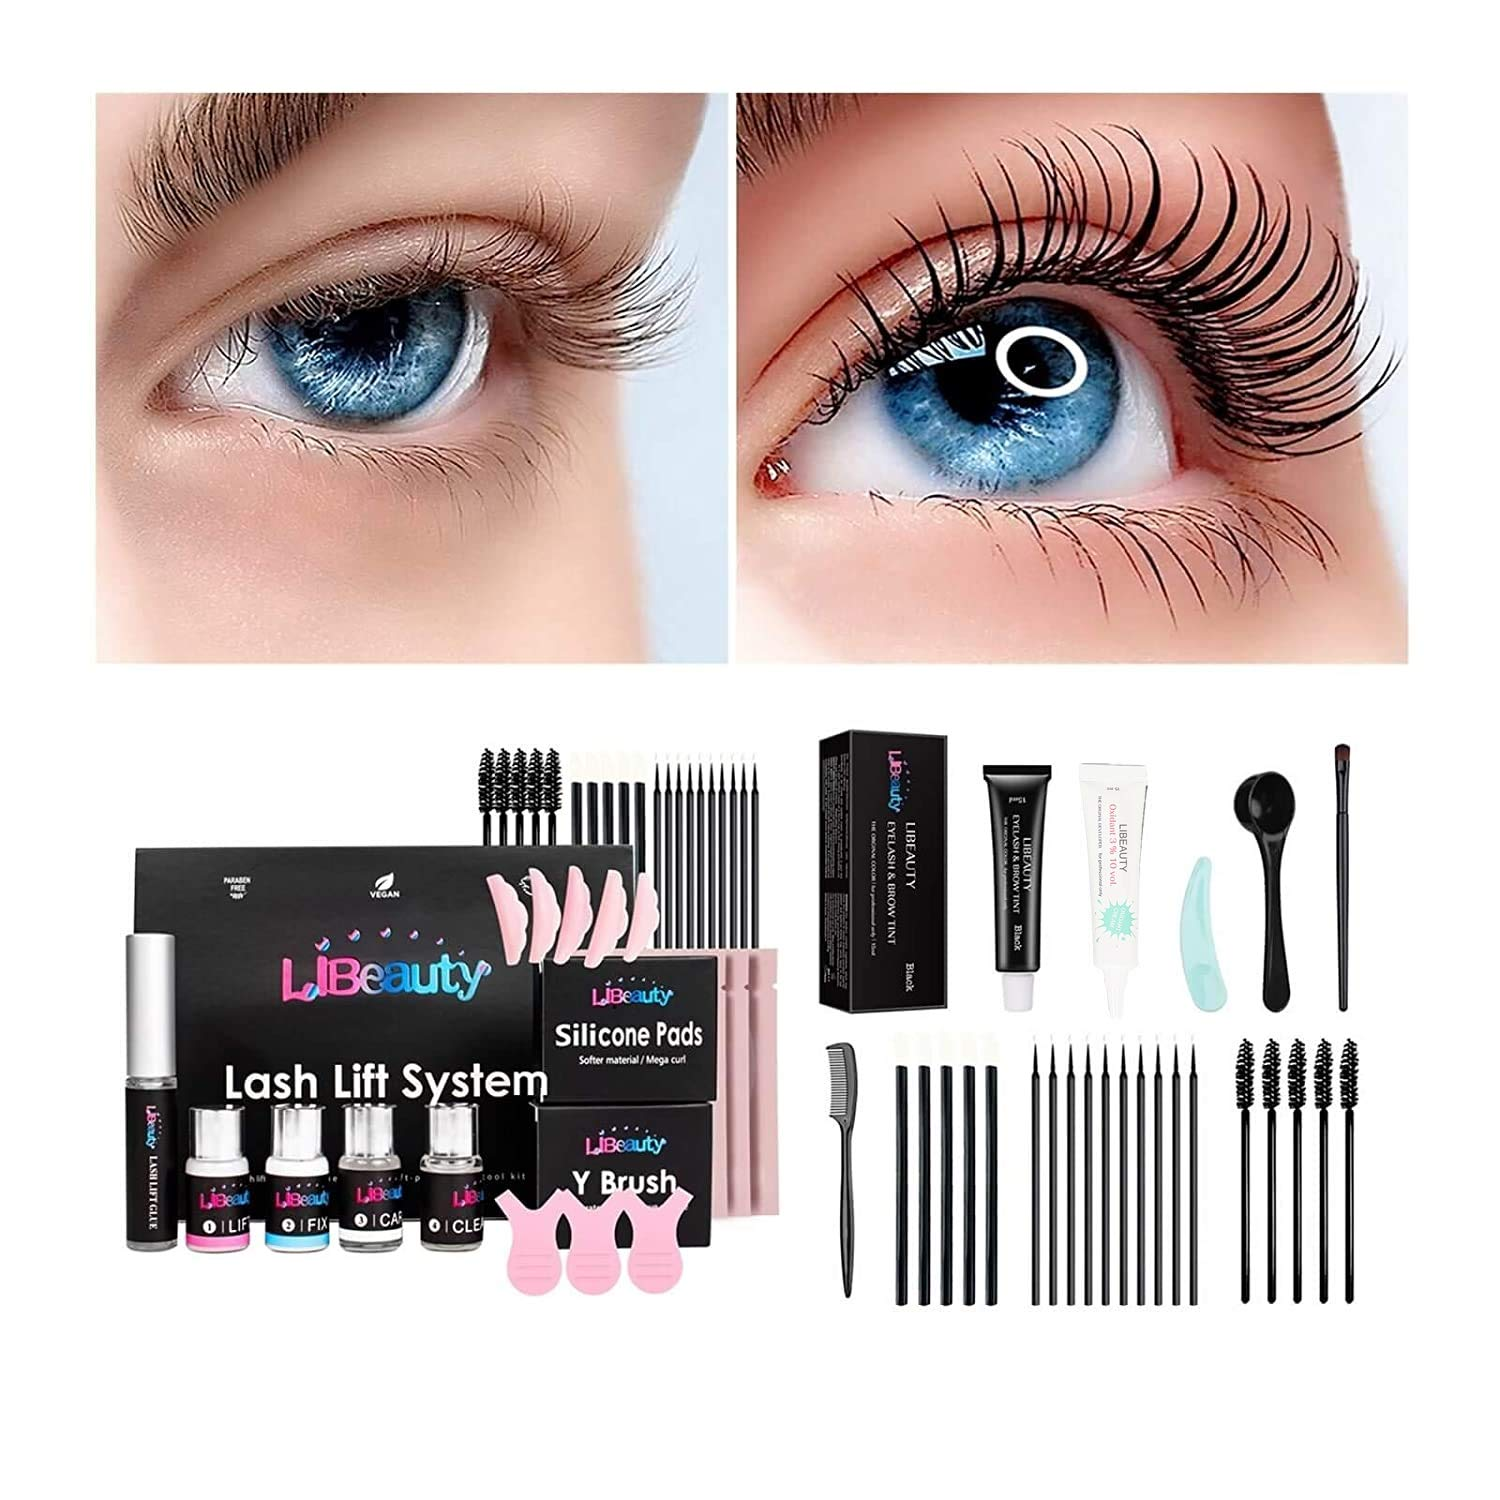 Libeauty Black All stores are sold Lash Lift Kit 5 Eyelash Minute With D Perm Price reduction